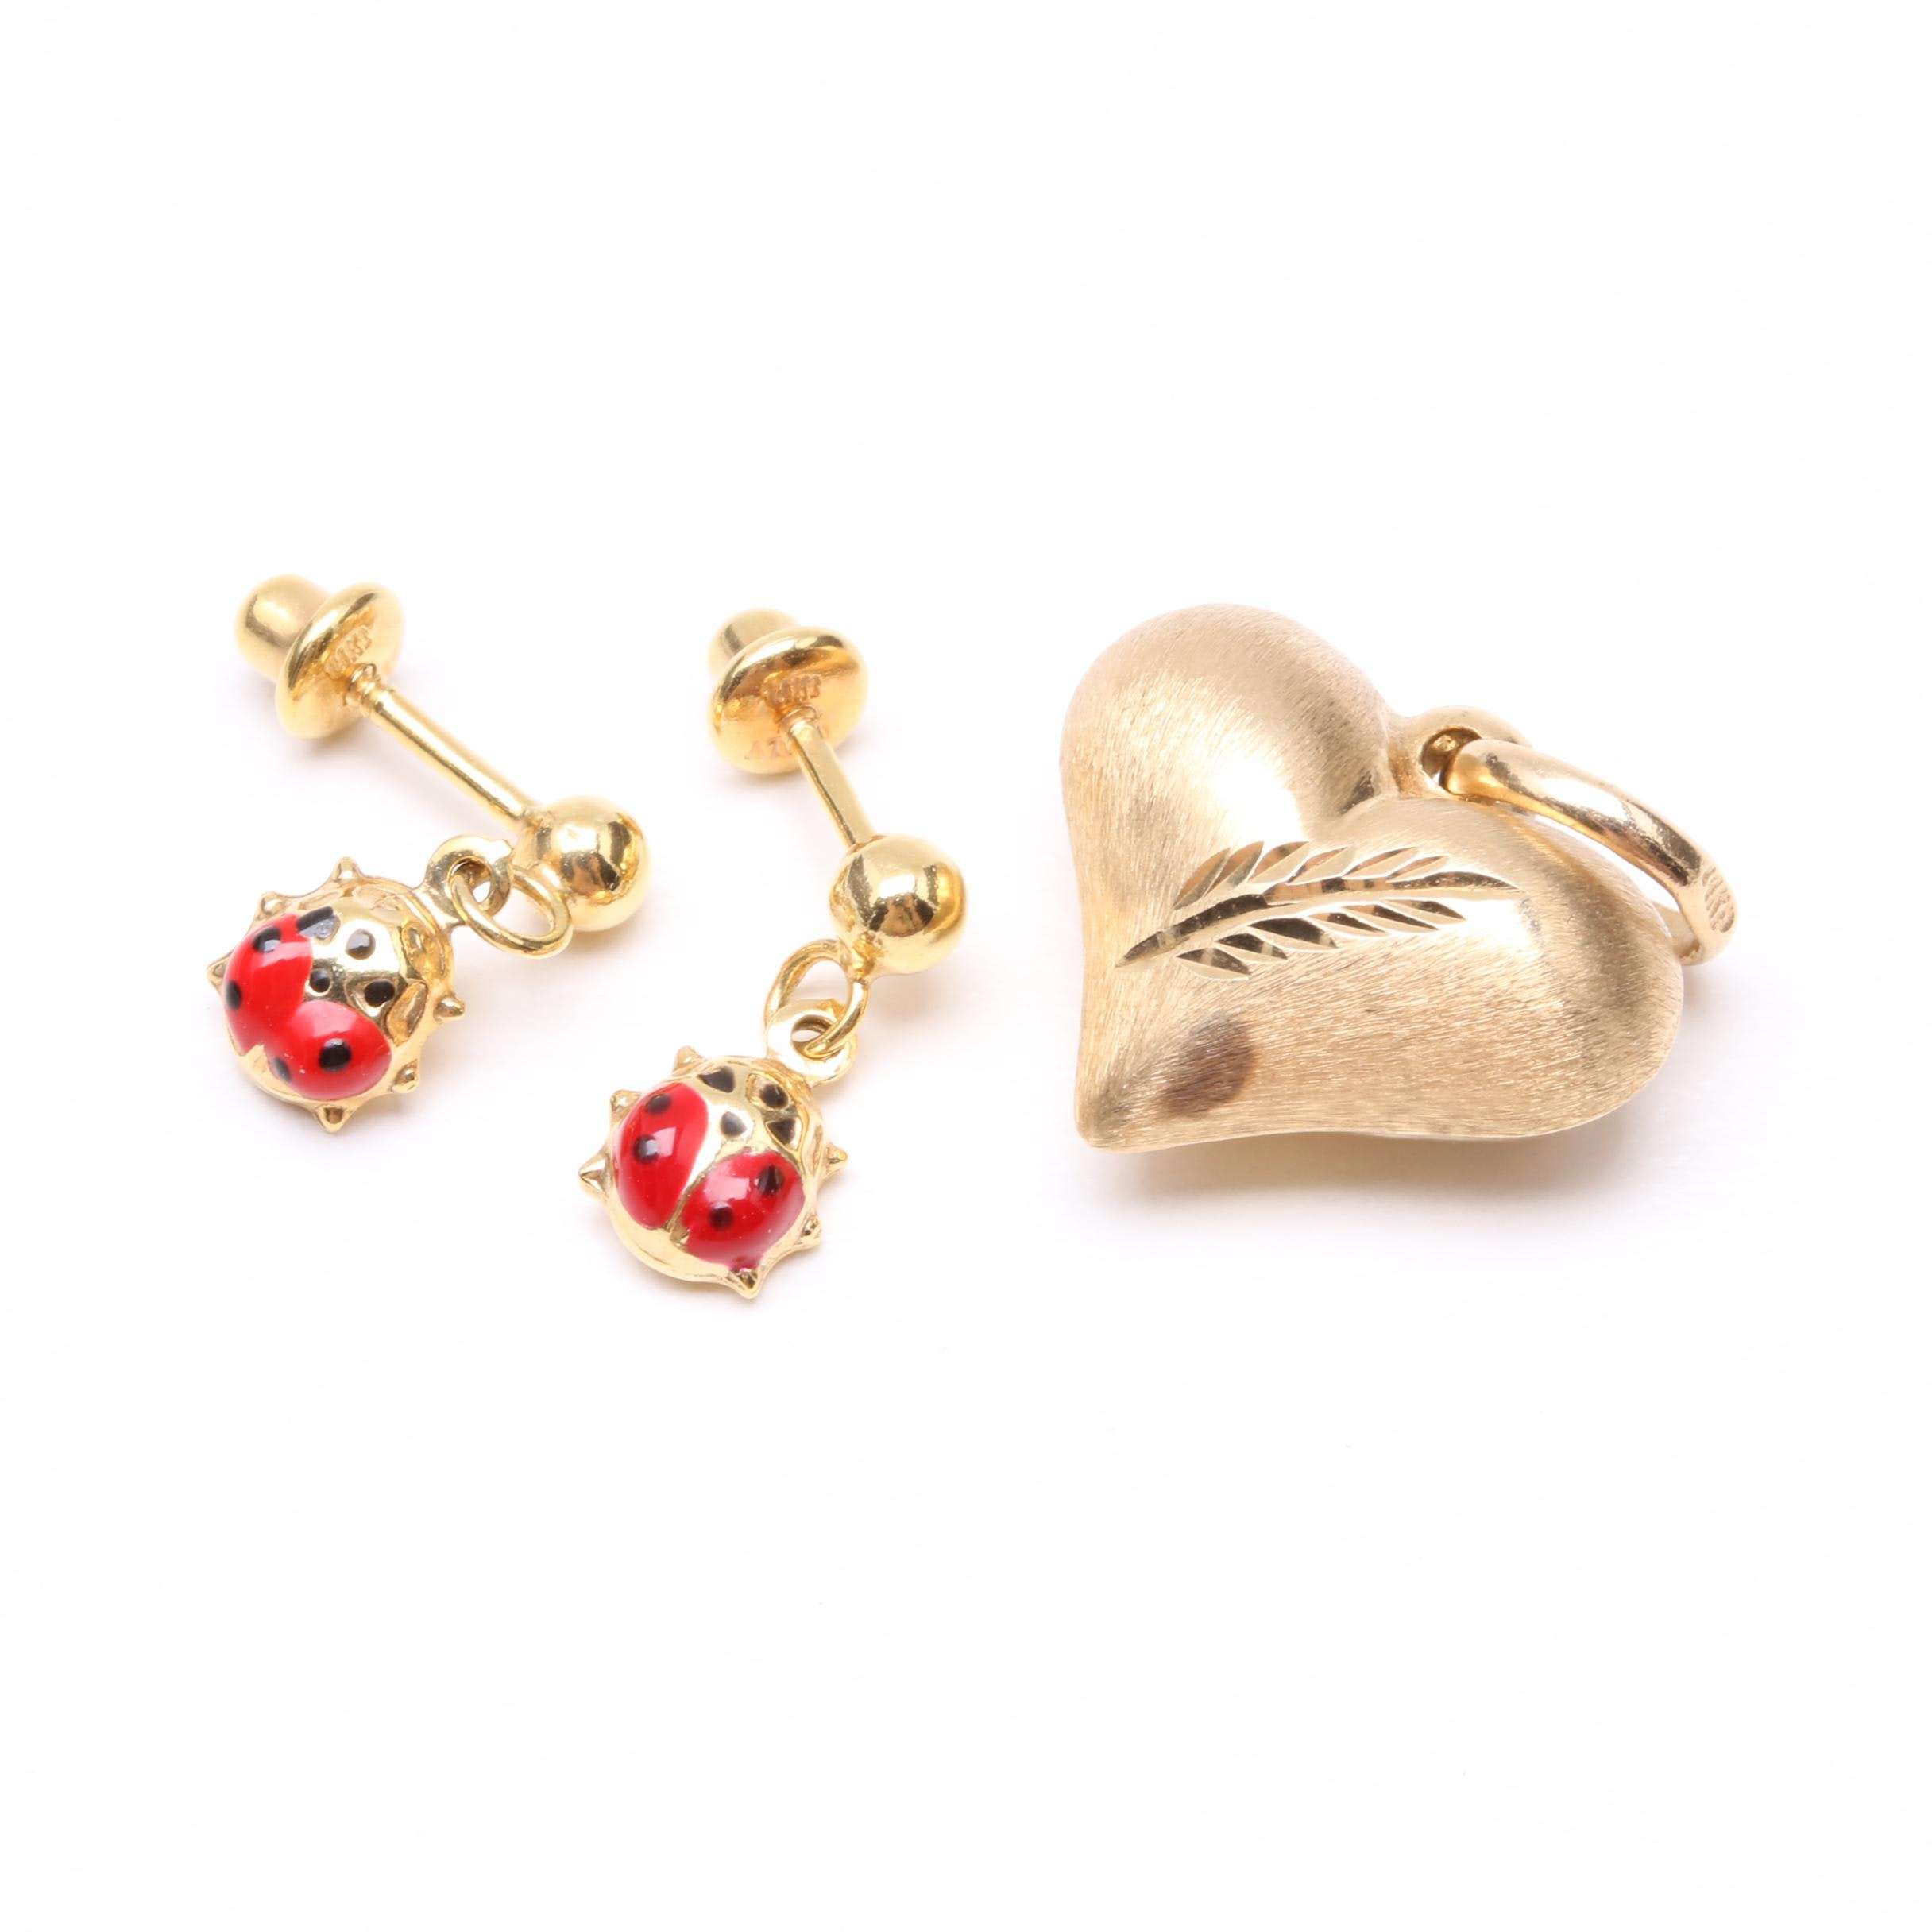 14K Yellow Gold Puffed Heart Charm and Enameled Ladybug Baby Earrings